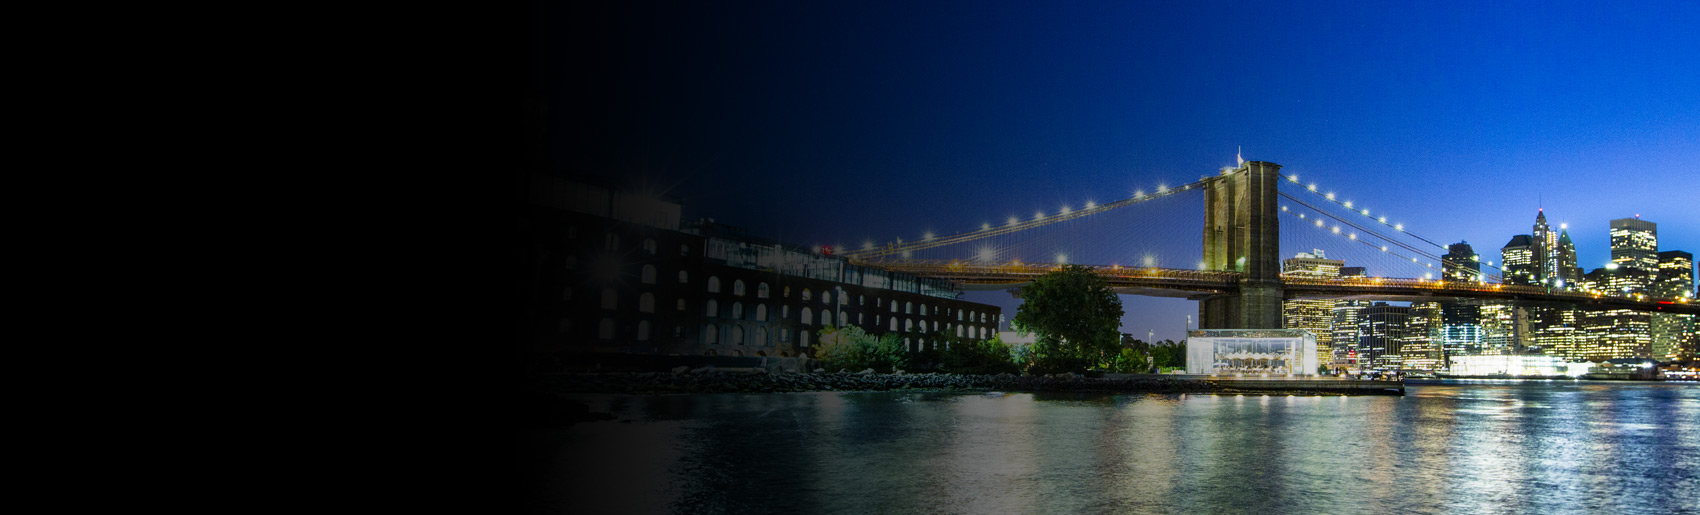 A night view of Brooklyn Bridge, and the East River